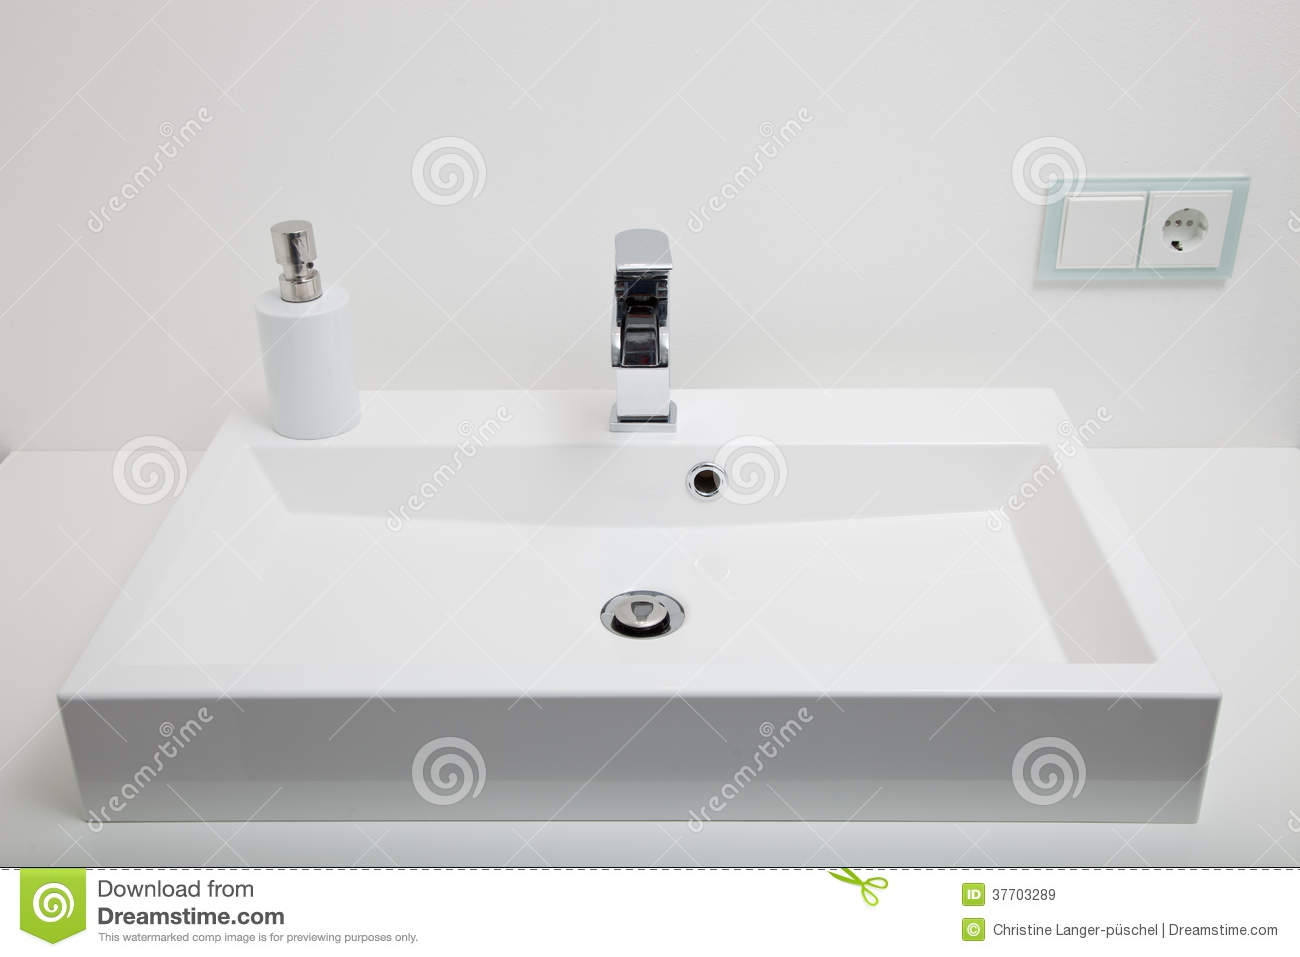 lavabo blanc simple dans une salle de bains image stock. Black Bedroom Furniture Sets. Home Design Ideas